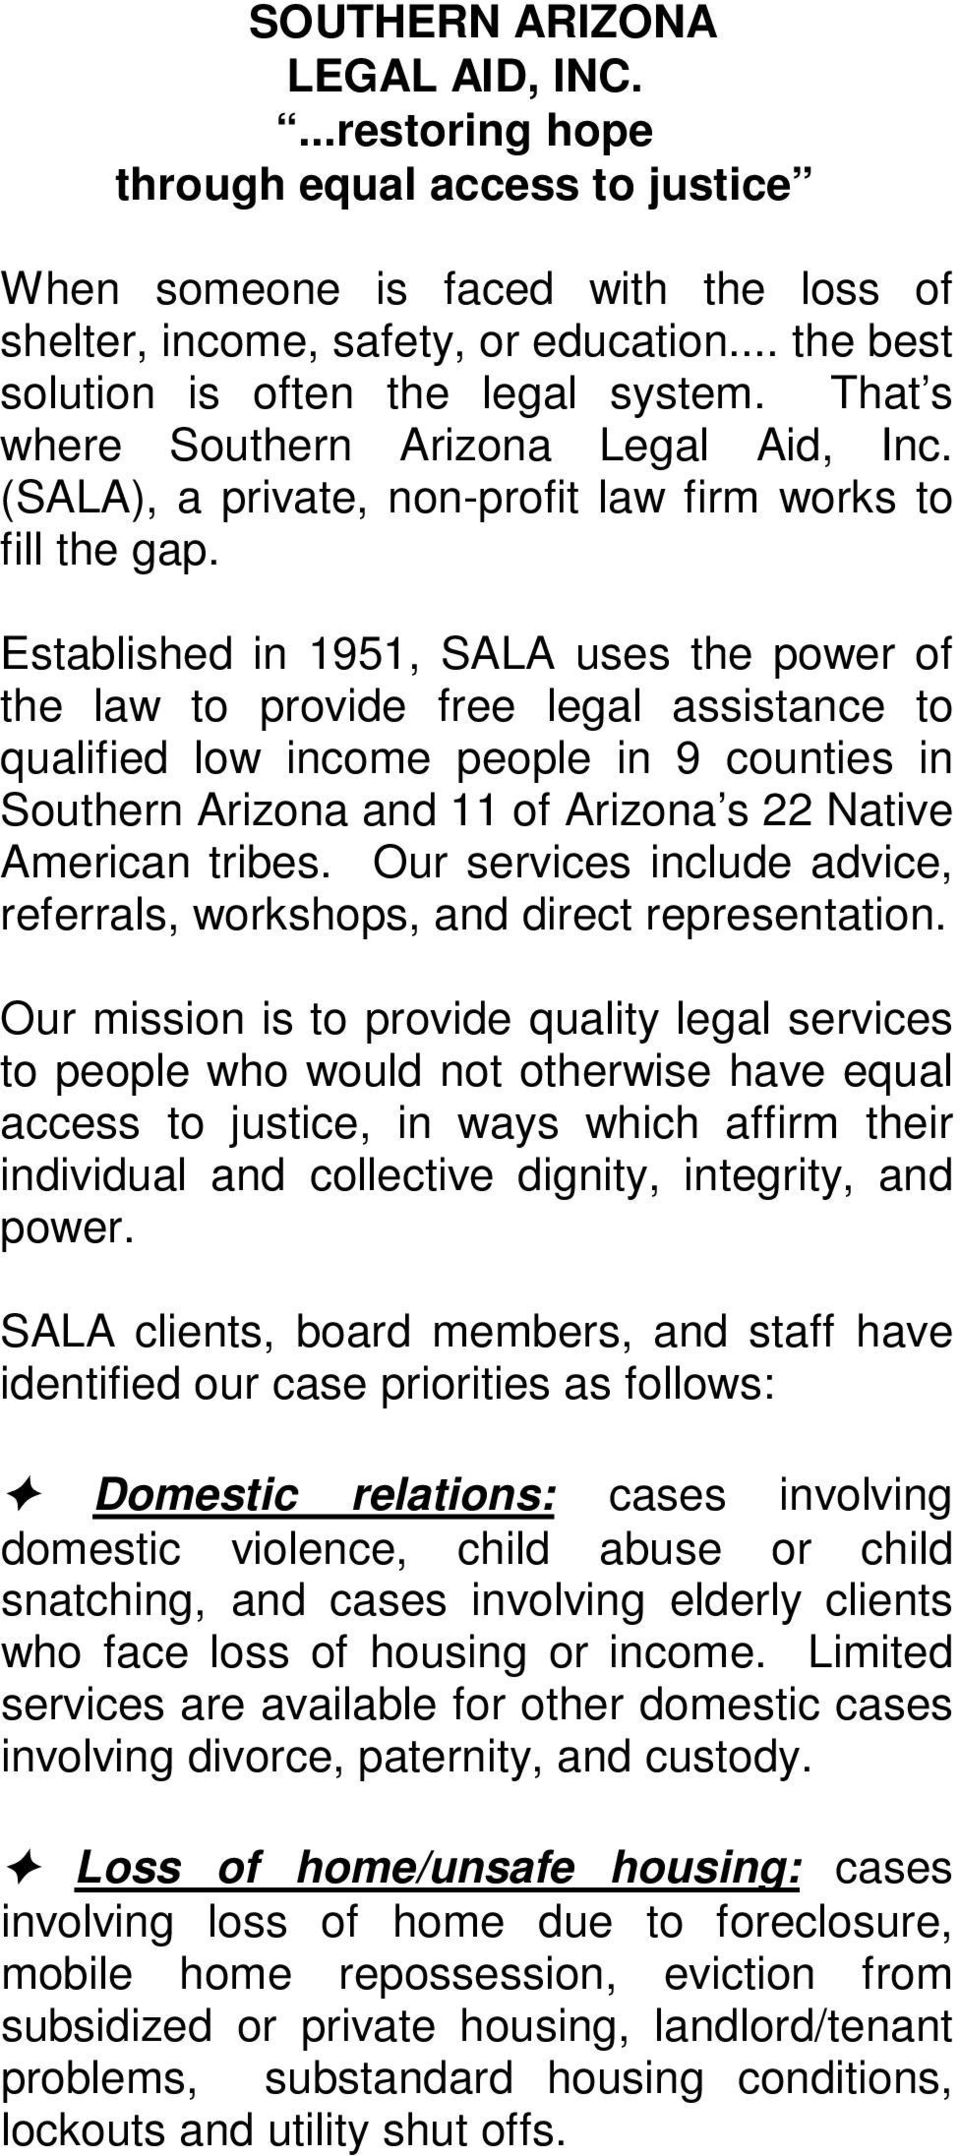 Established in 1951, SALA uses the power of the law to provide free legal assistance to qualified low income people in 9 counties in Southern Arizona and 11 of Arizona s 22 Native American tribes.